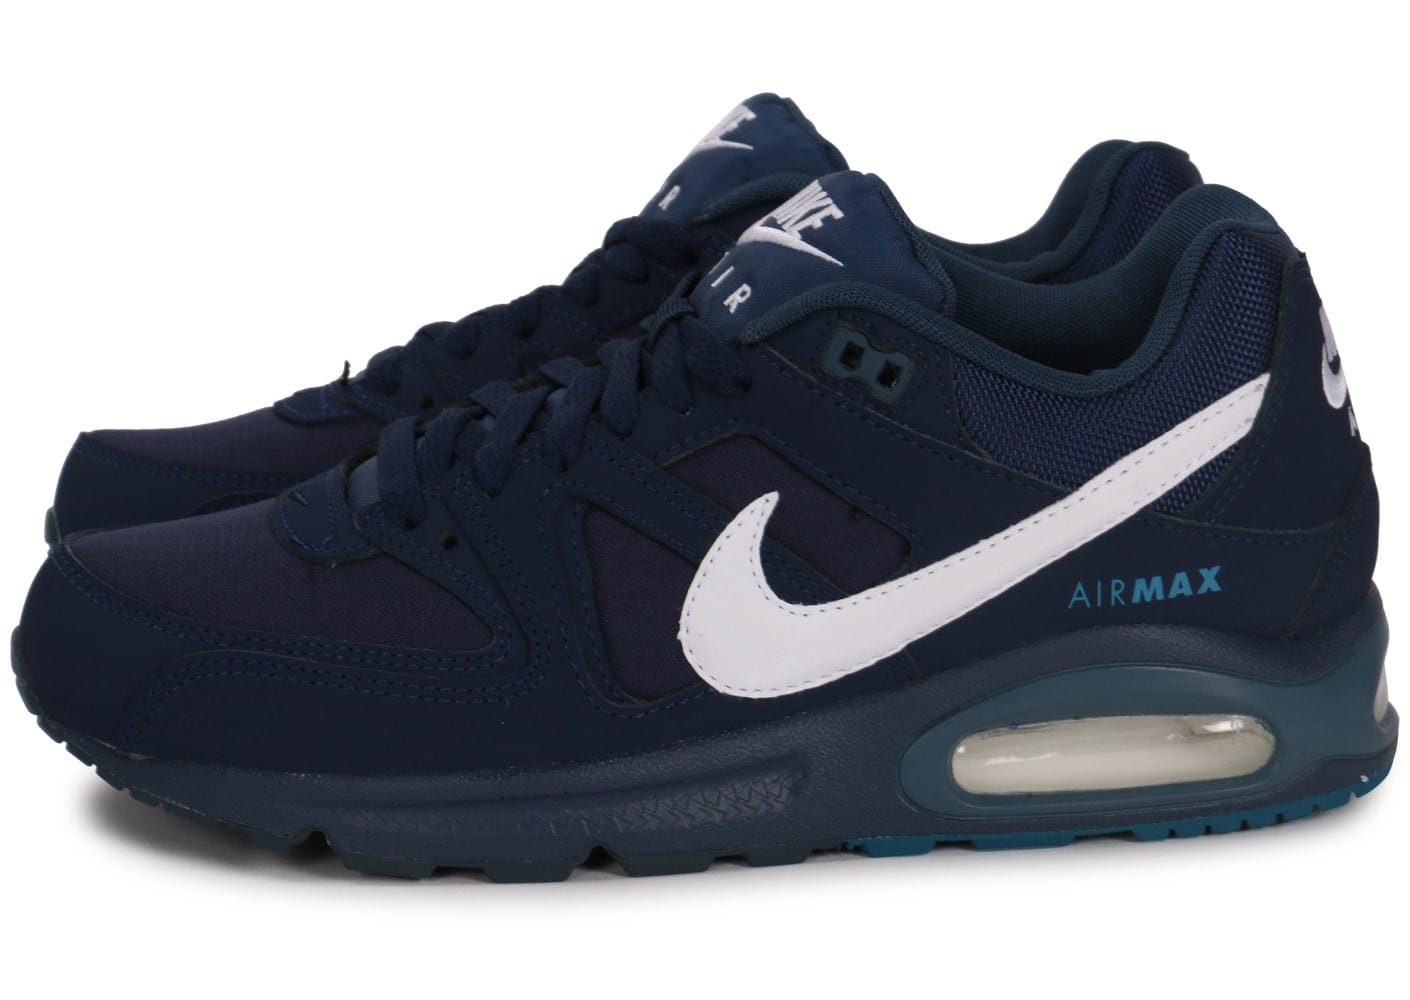 soldes nike air max command bleu marine et blanc chaussures homme chausport. Black Bedroom Furniture Sets. Home Design Ideas